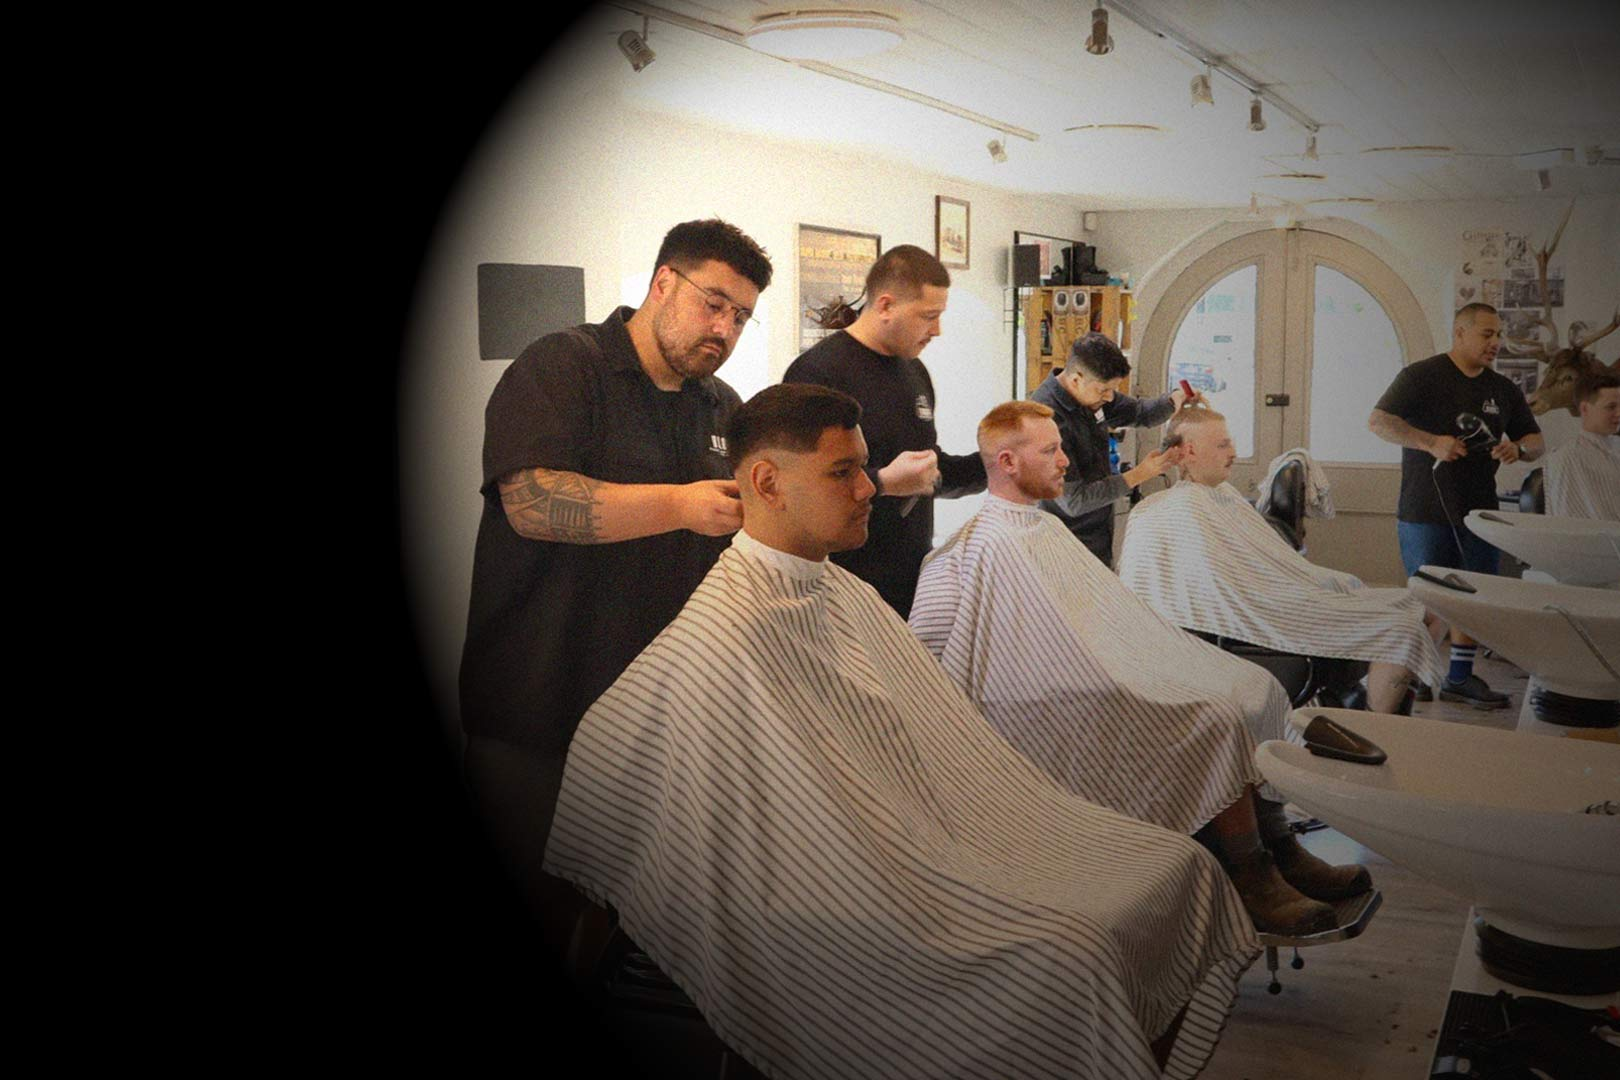 Come to Bloke barber Dunedin for a haircut by our trained hair stylists at 2 Dowling street Dunedin we have beard specialists and mens hairdressers to cut your hair shave your head give you a zero fade cut or get a cheap haircut in Dunedin